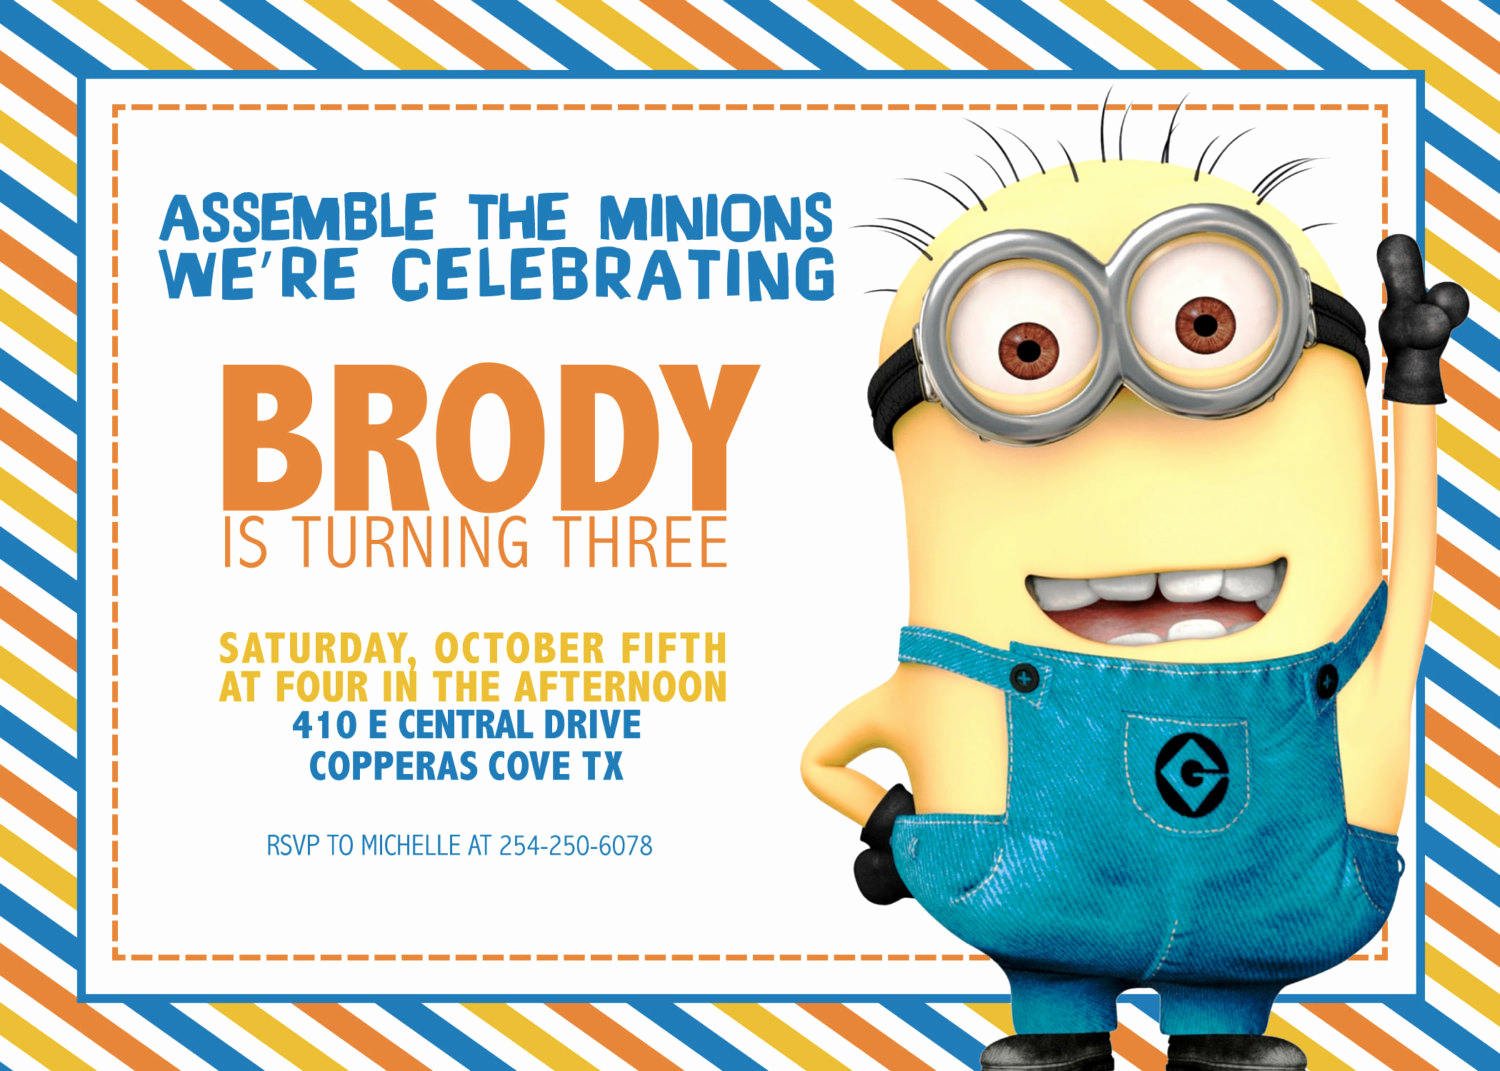 Free Minion Invitation Template New Free Printable Minion Birthday Party Invitations Ideas